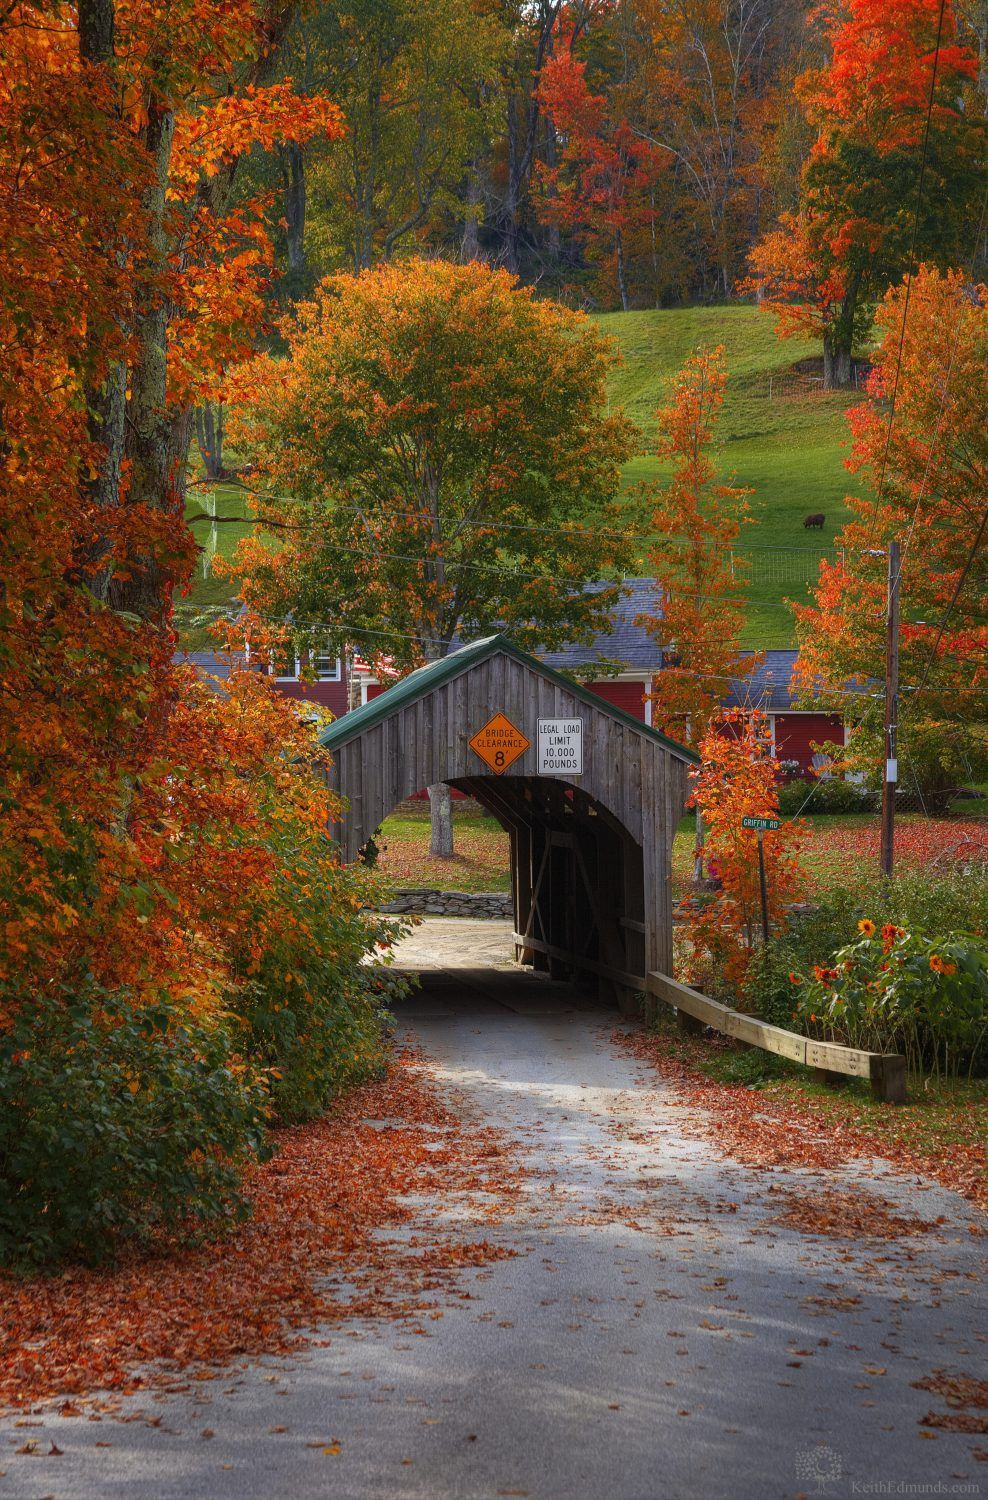 Classic Vermont Fall Foliage Tour (All DAY) - Local Captures #autumnscenes